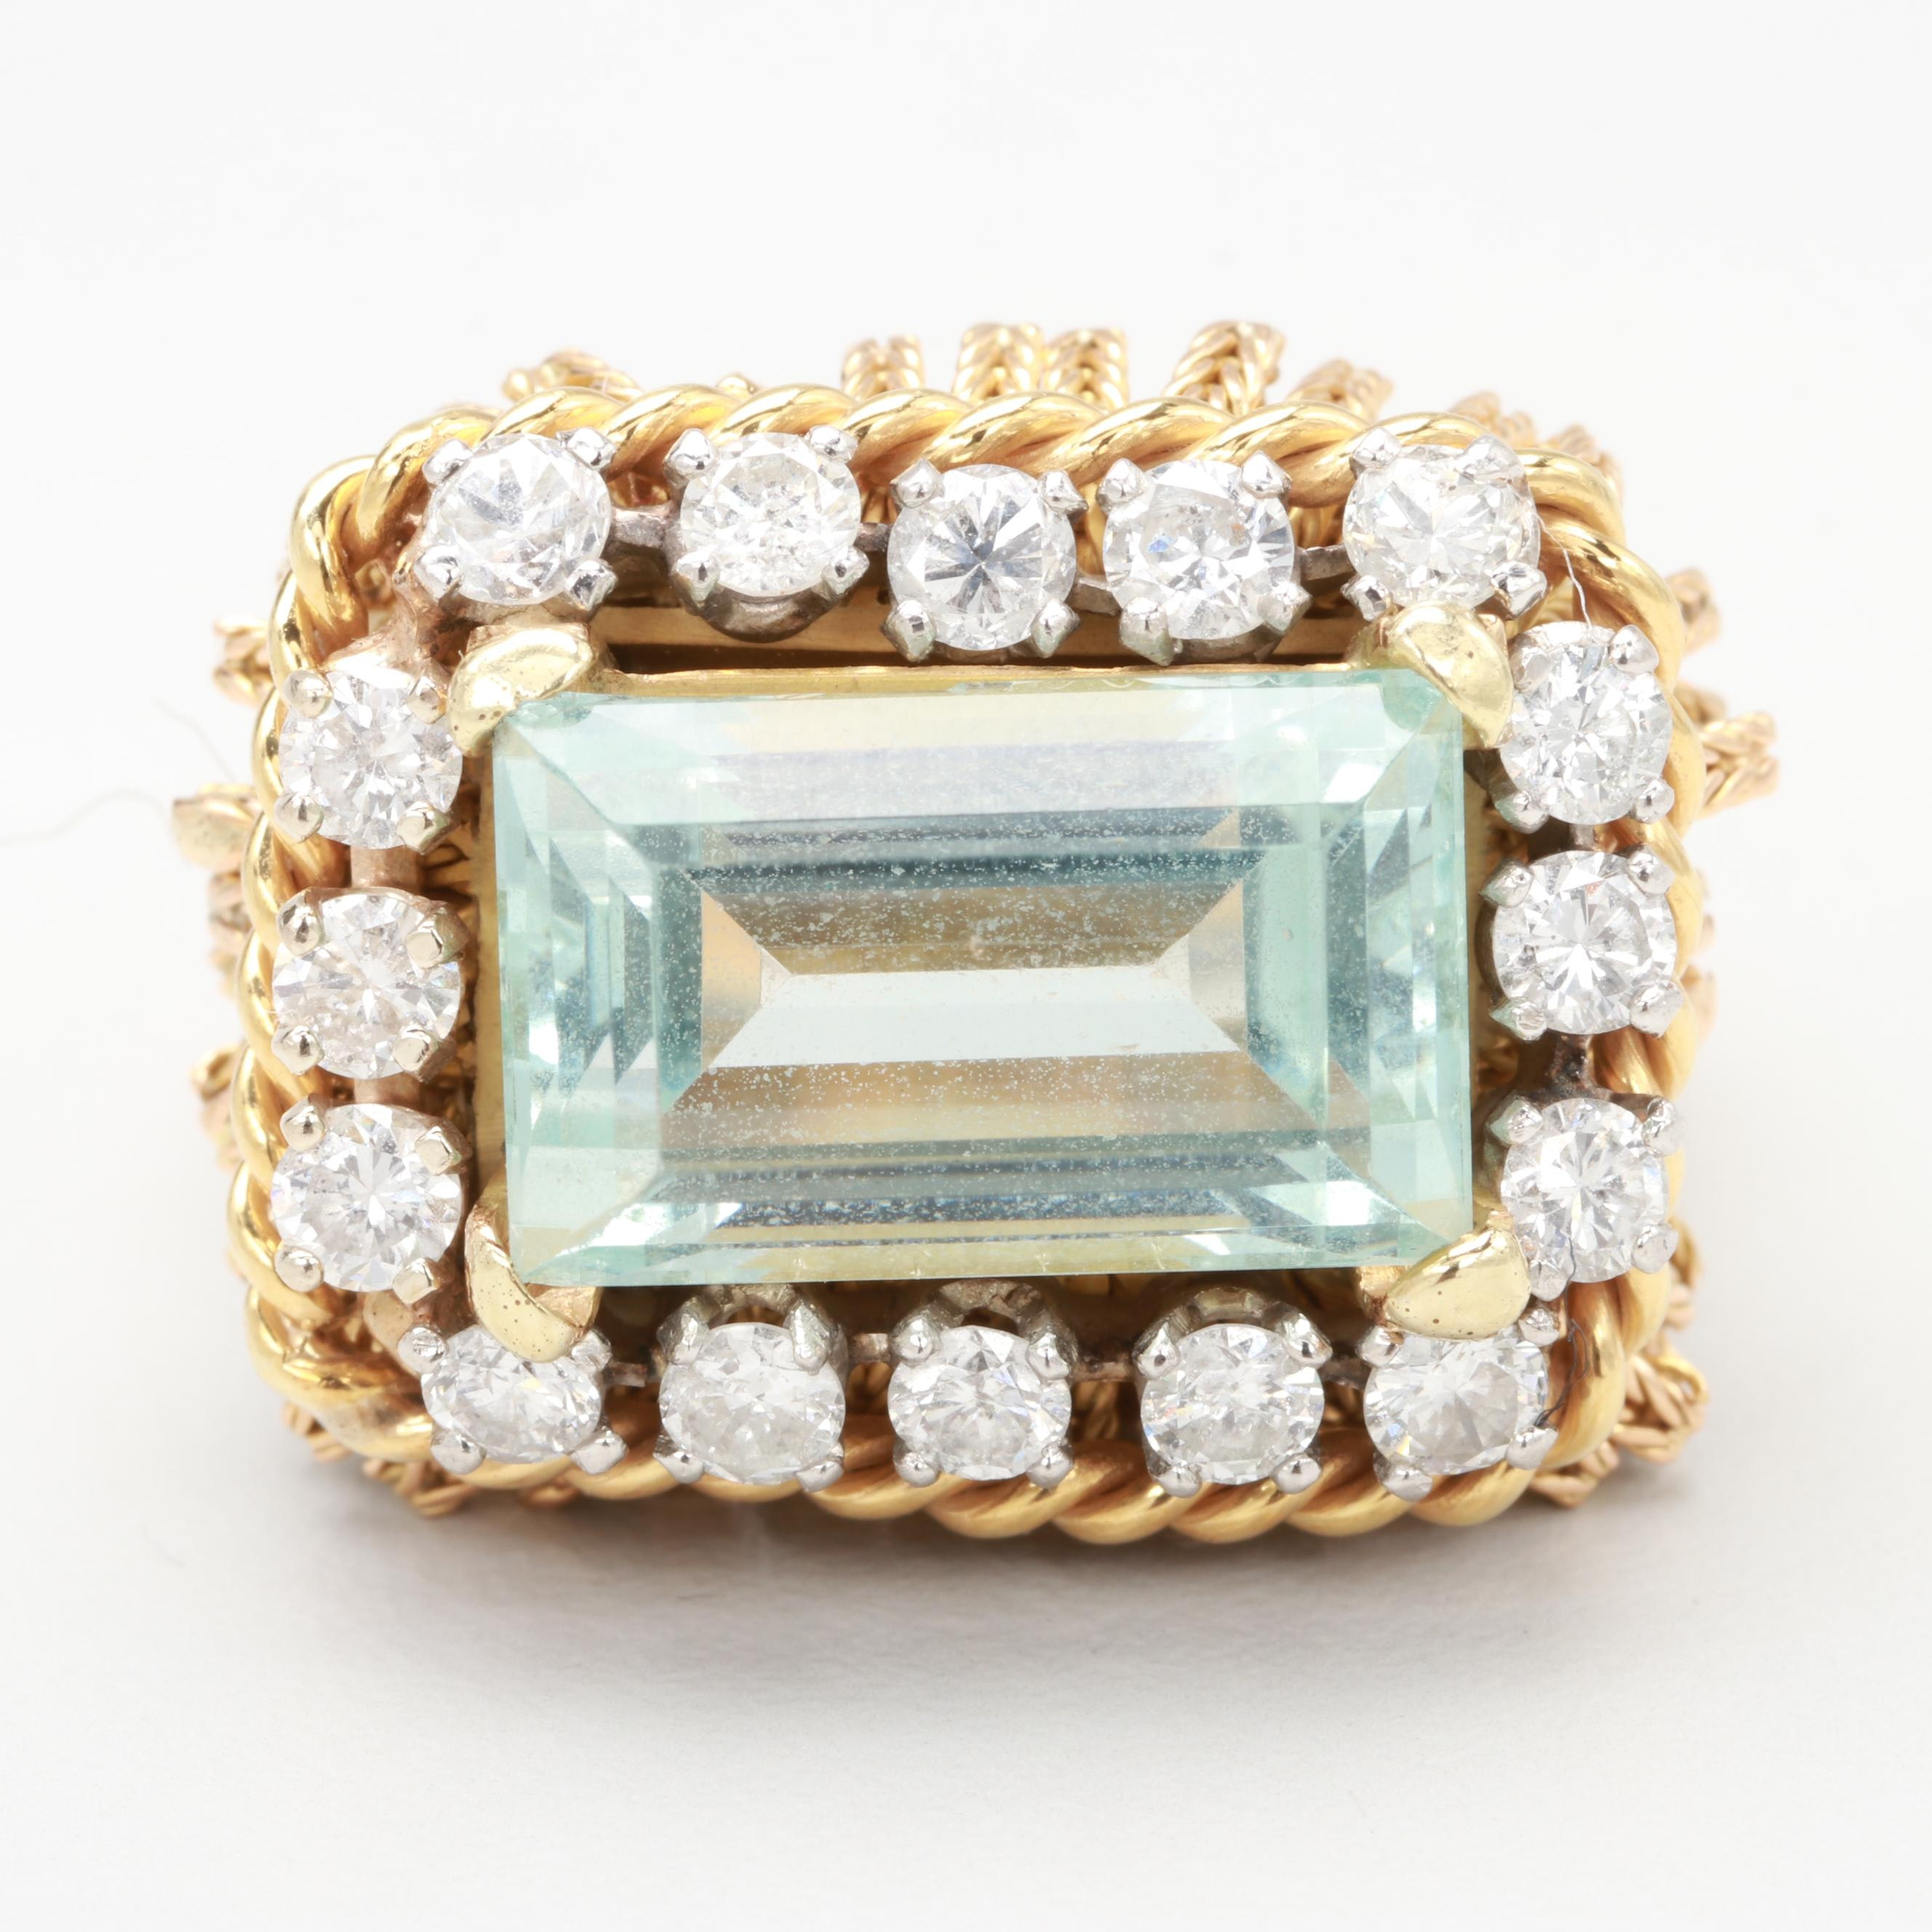 18K Gold & Platinum 6.24 CT Aquamarine, Diamond Ring with Foxtail Tassel Accents